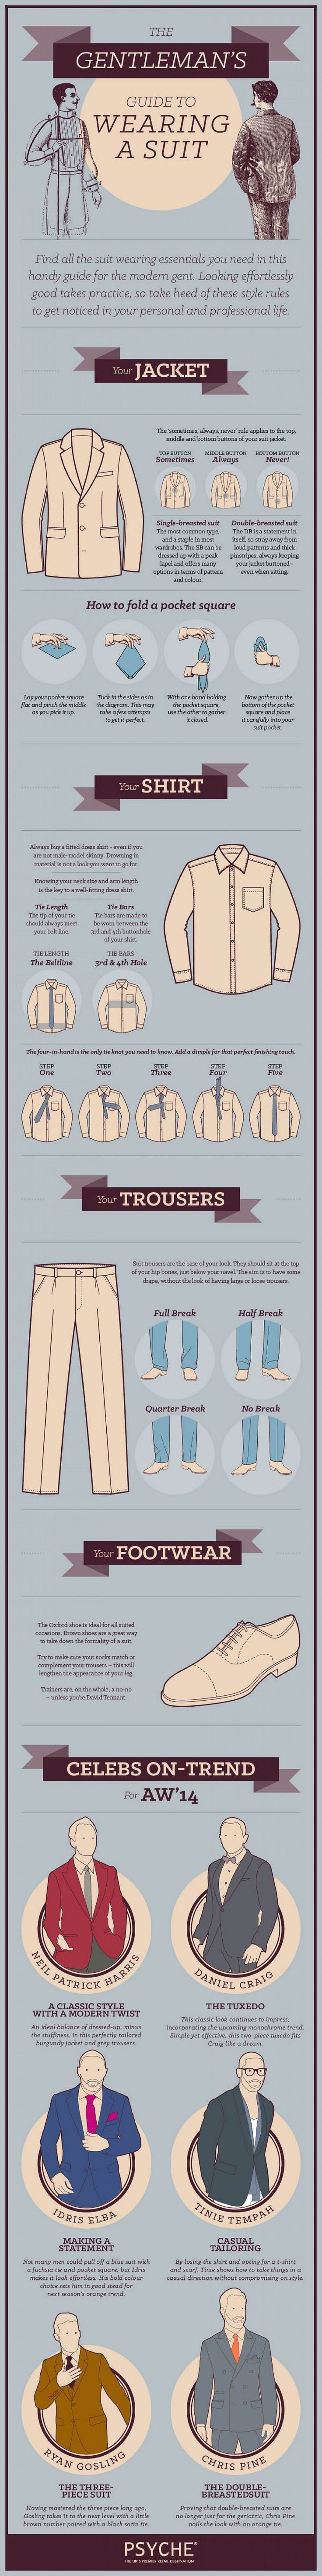 The Gentleman's Guide To Wearing A Suit (infographic) | The Roosevelts